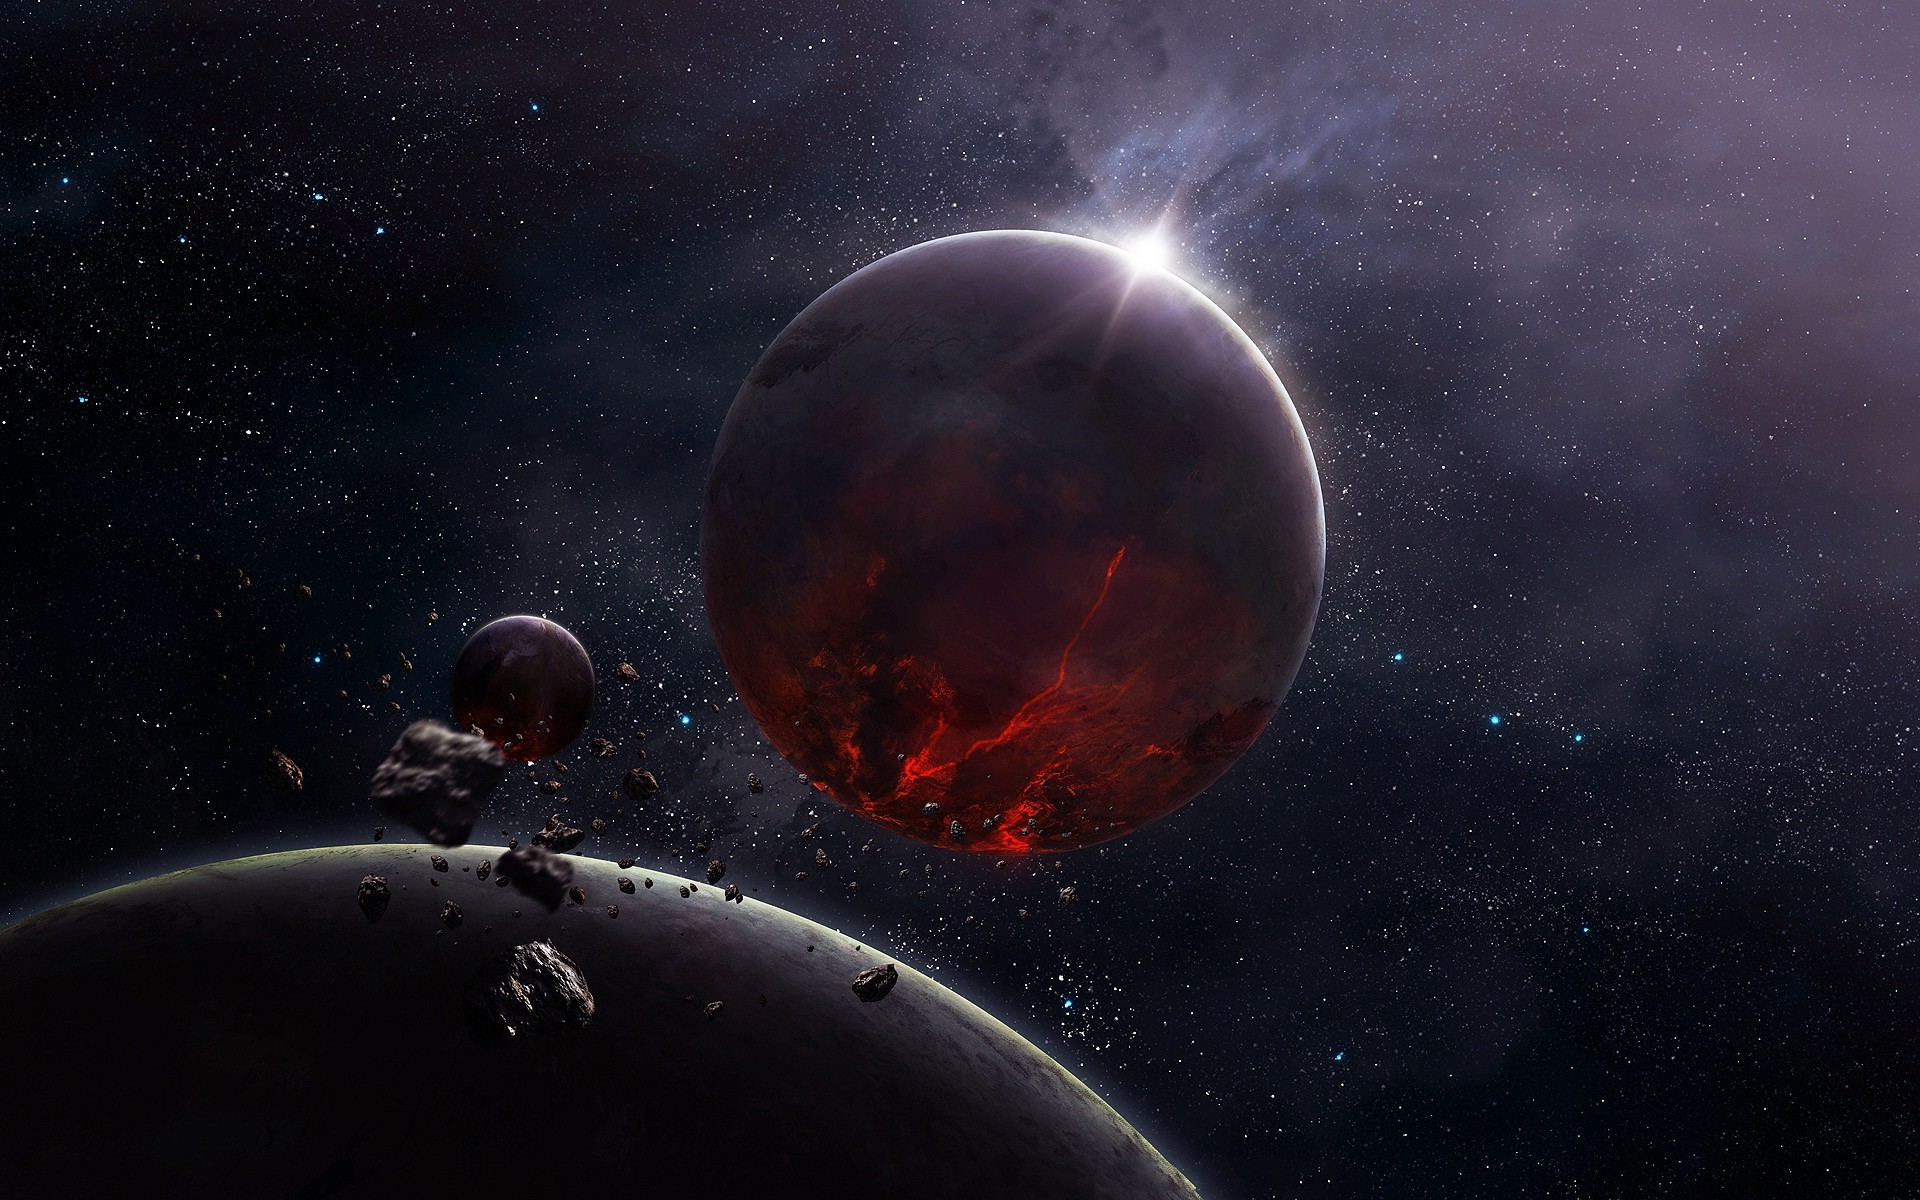 3d Asteroid Wallpaper Cg Render Space Planet Moon Stars Asteroid Wallpapers